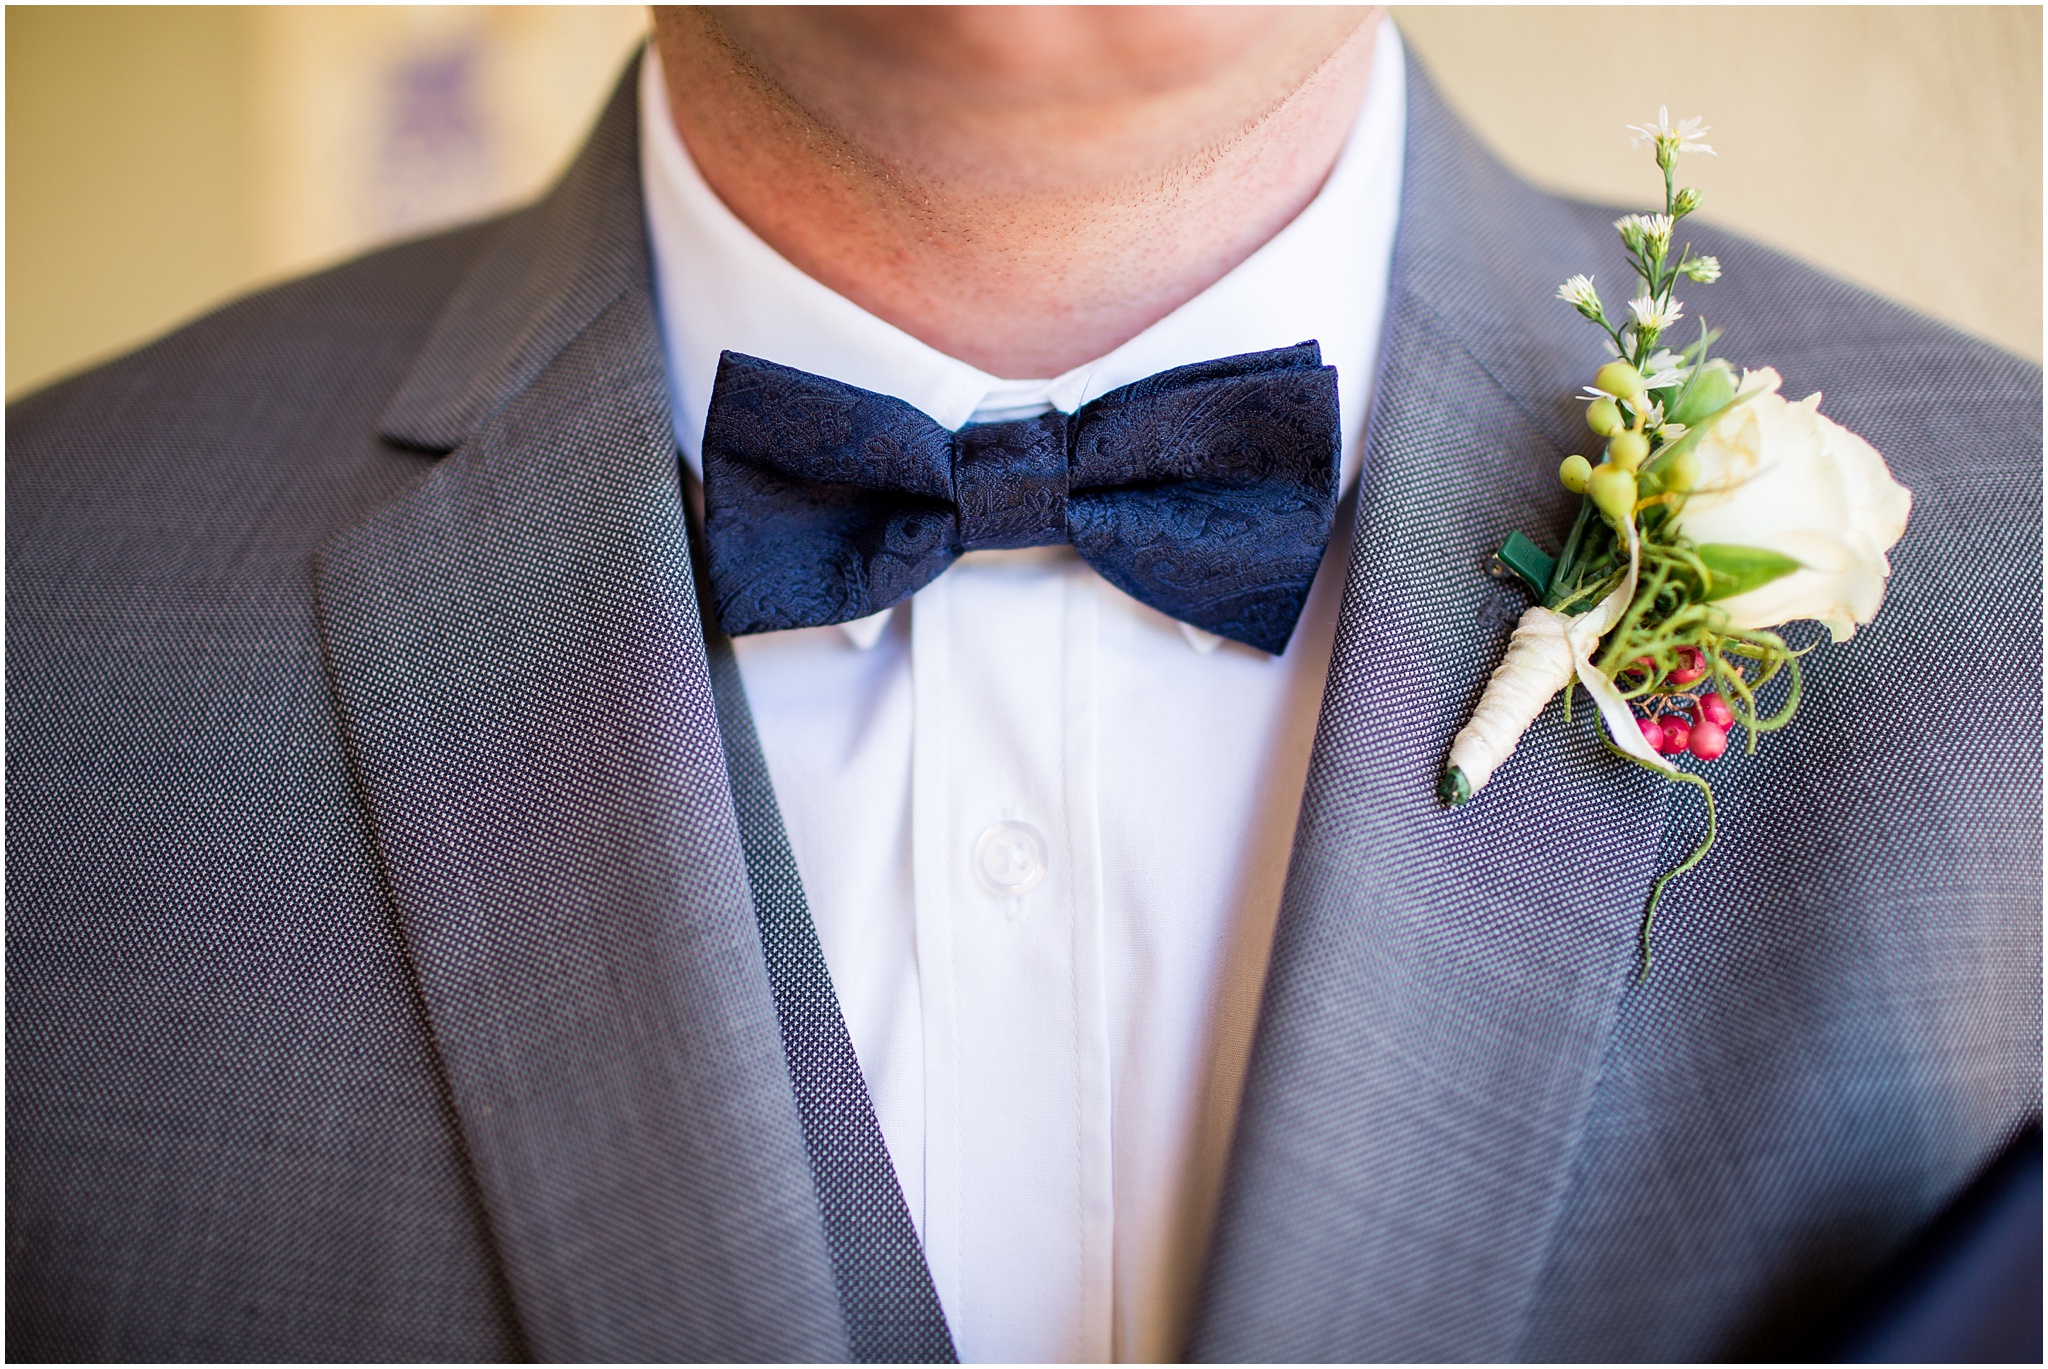 Groom wearing a bow tie at The Chapel at Gold Creek